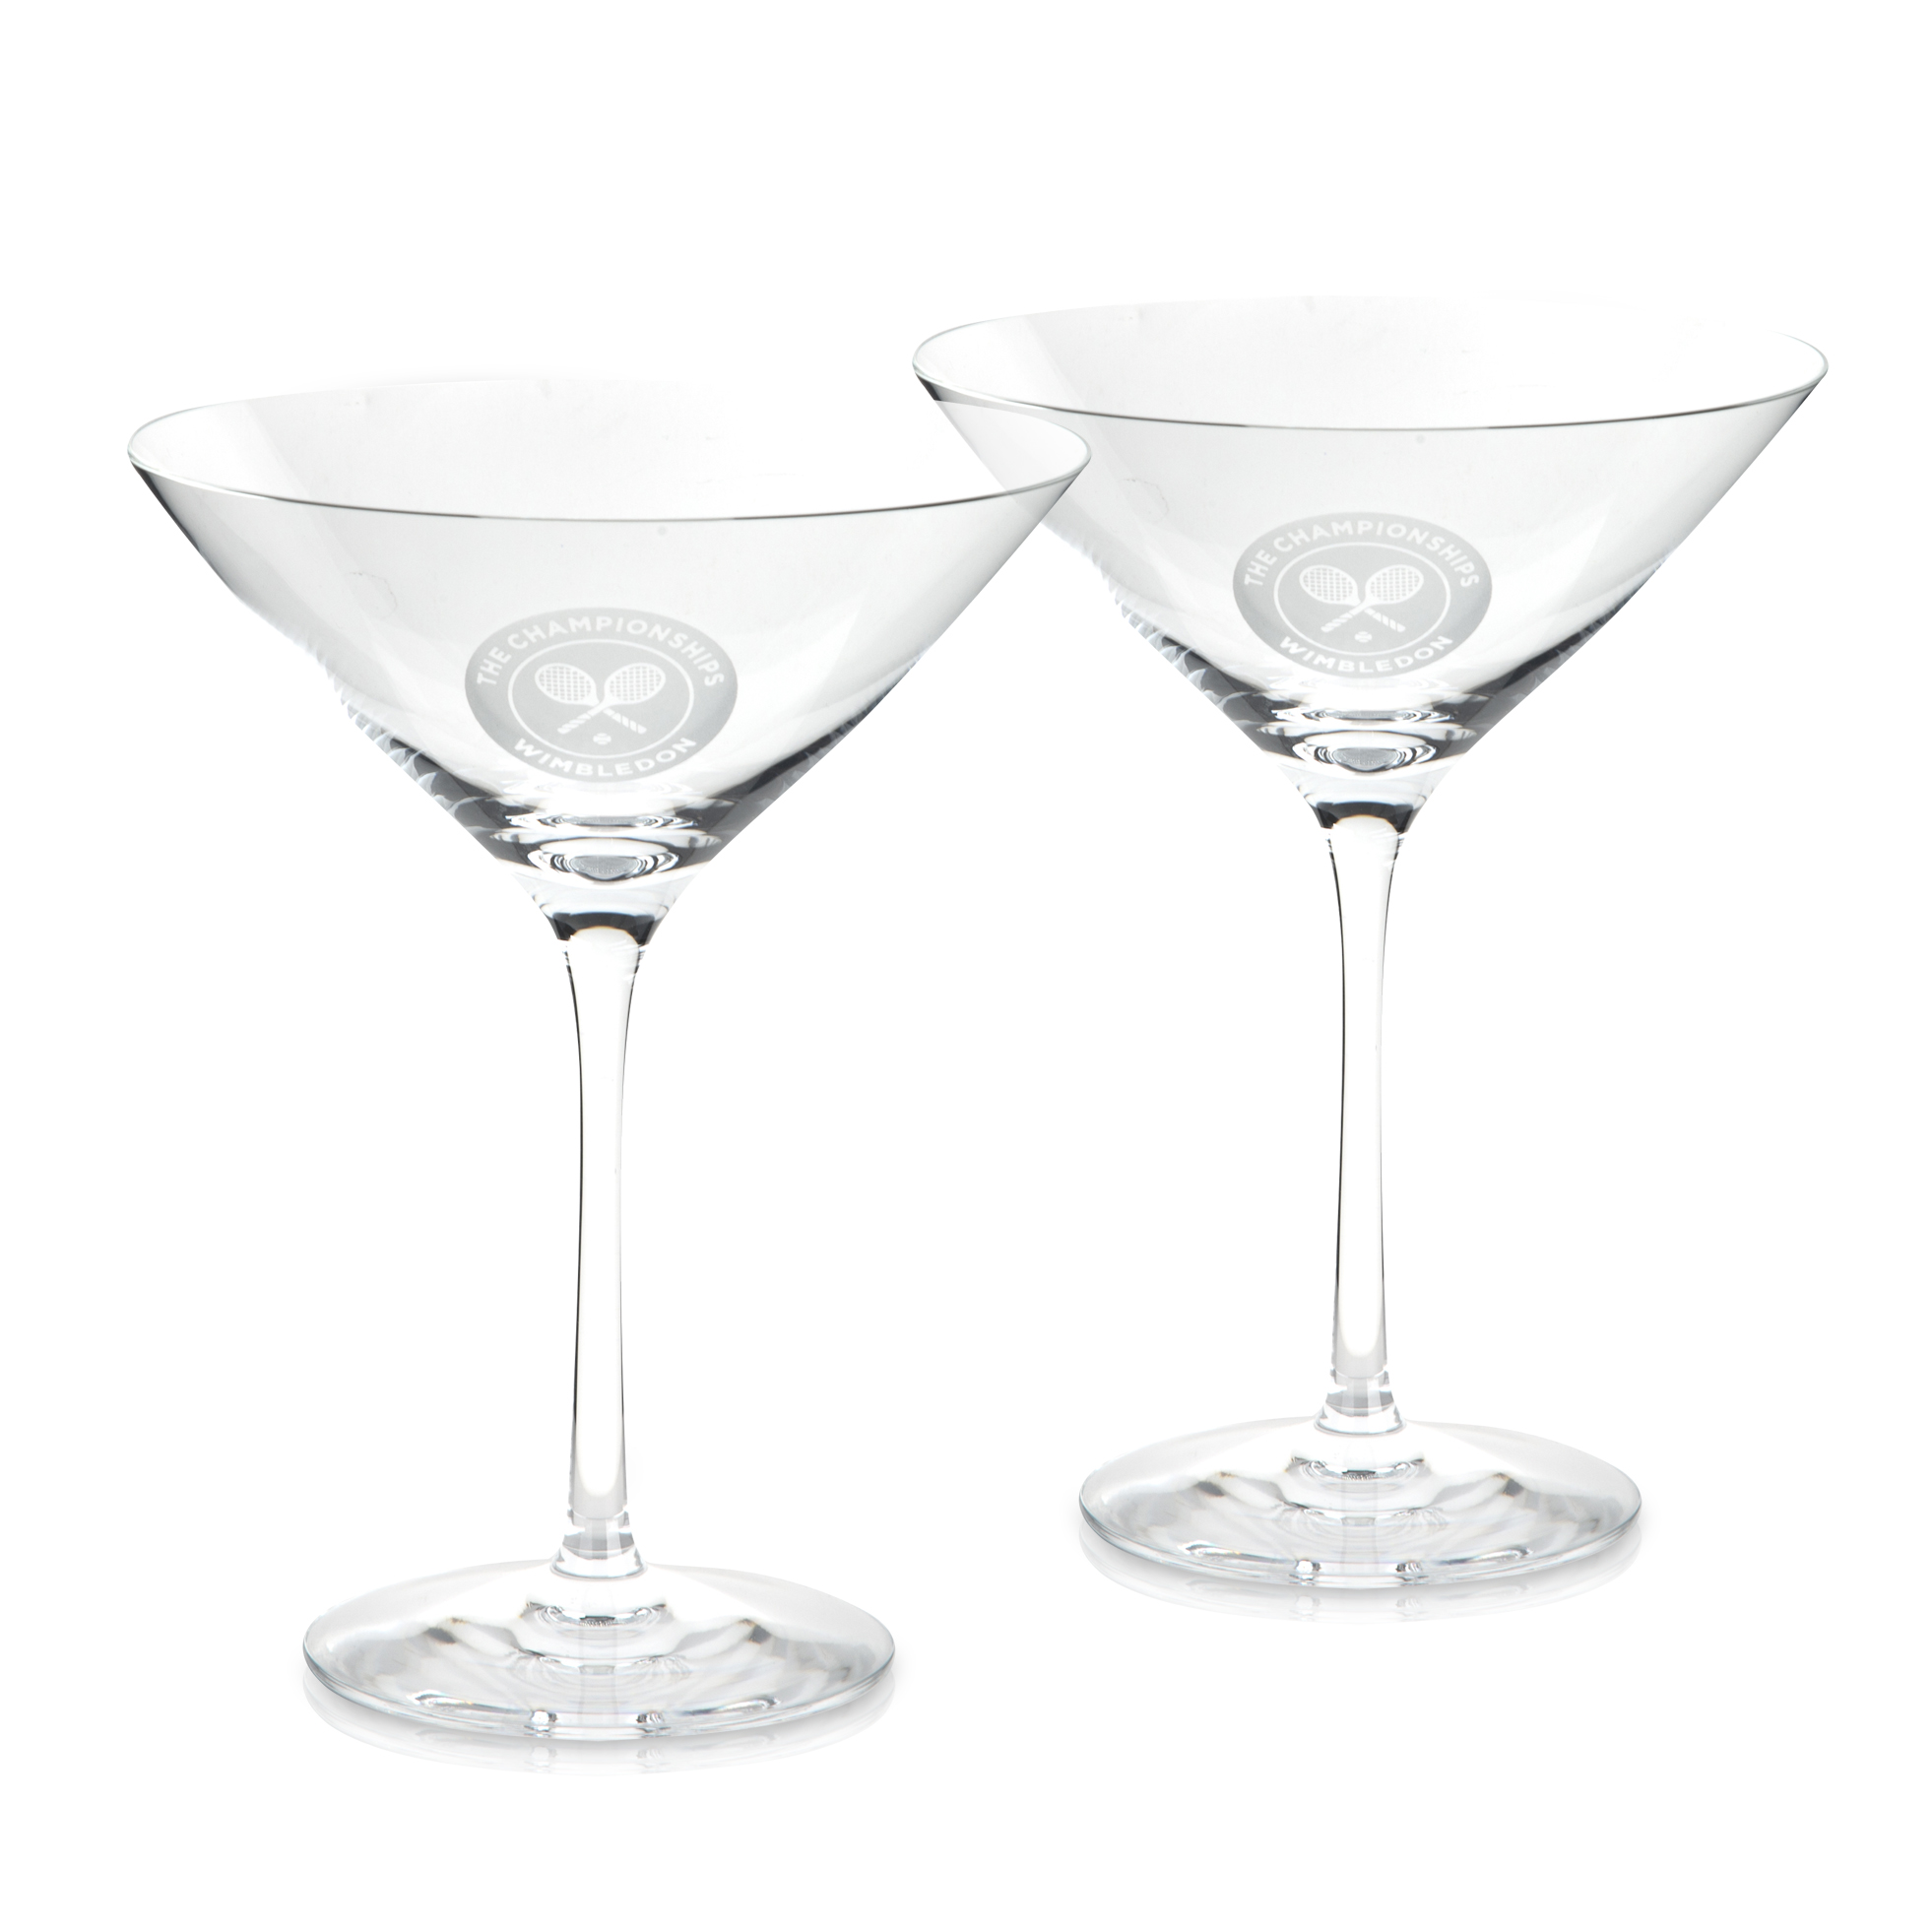 Wimbledon 2012 Set Of Two Crystal Martini Glasses